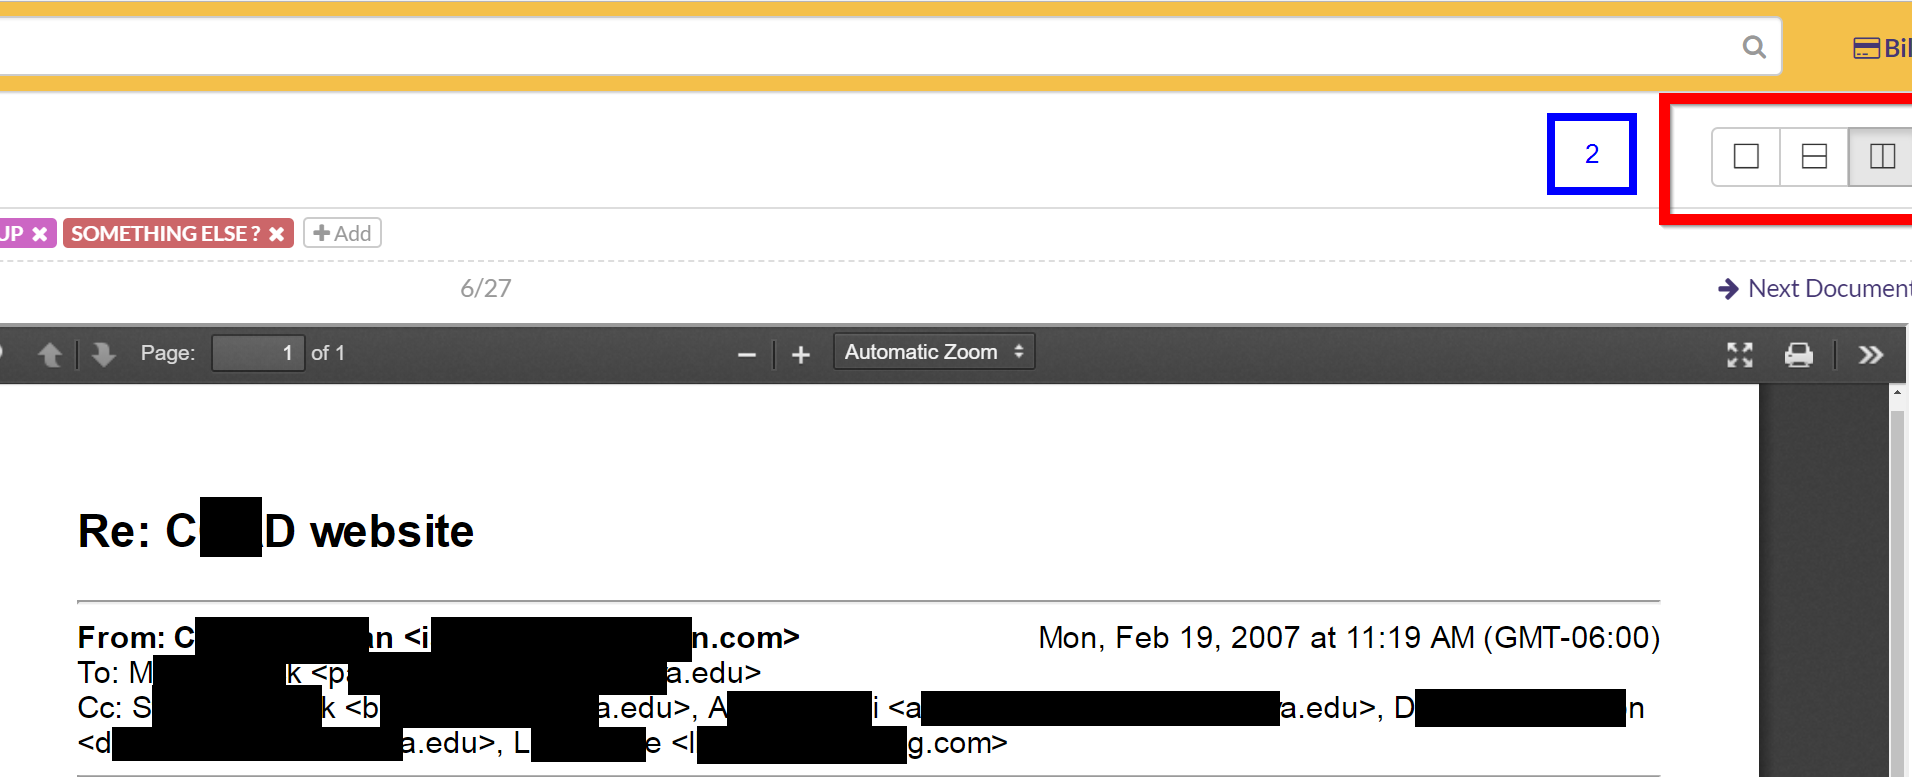 Change location of email context